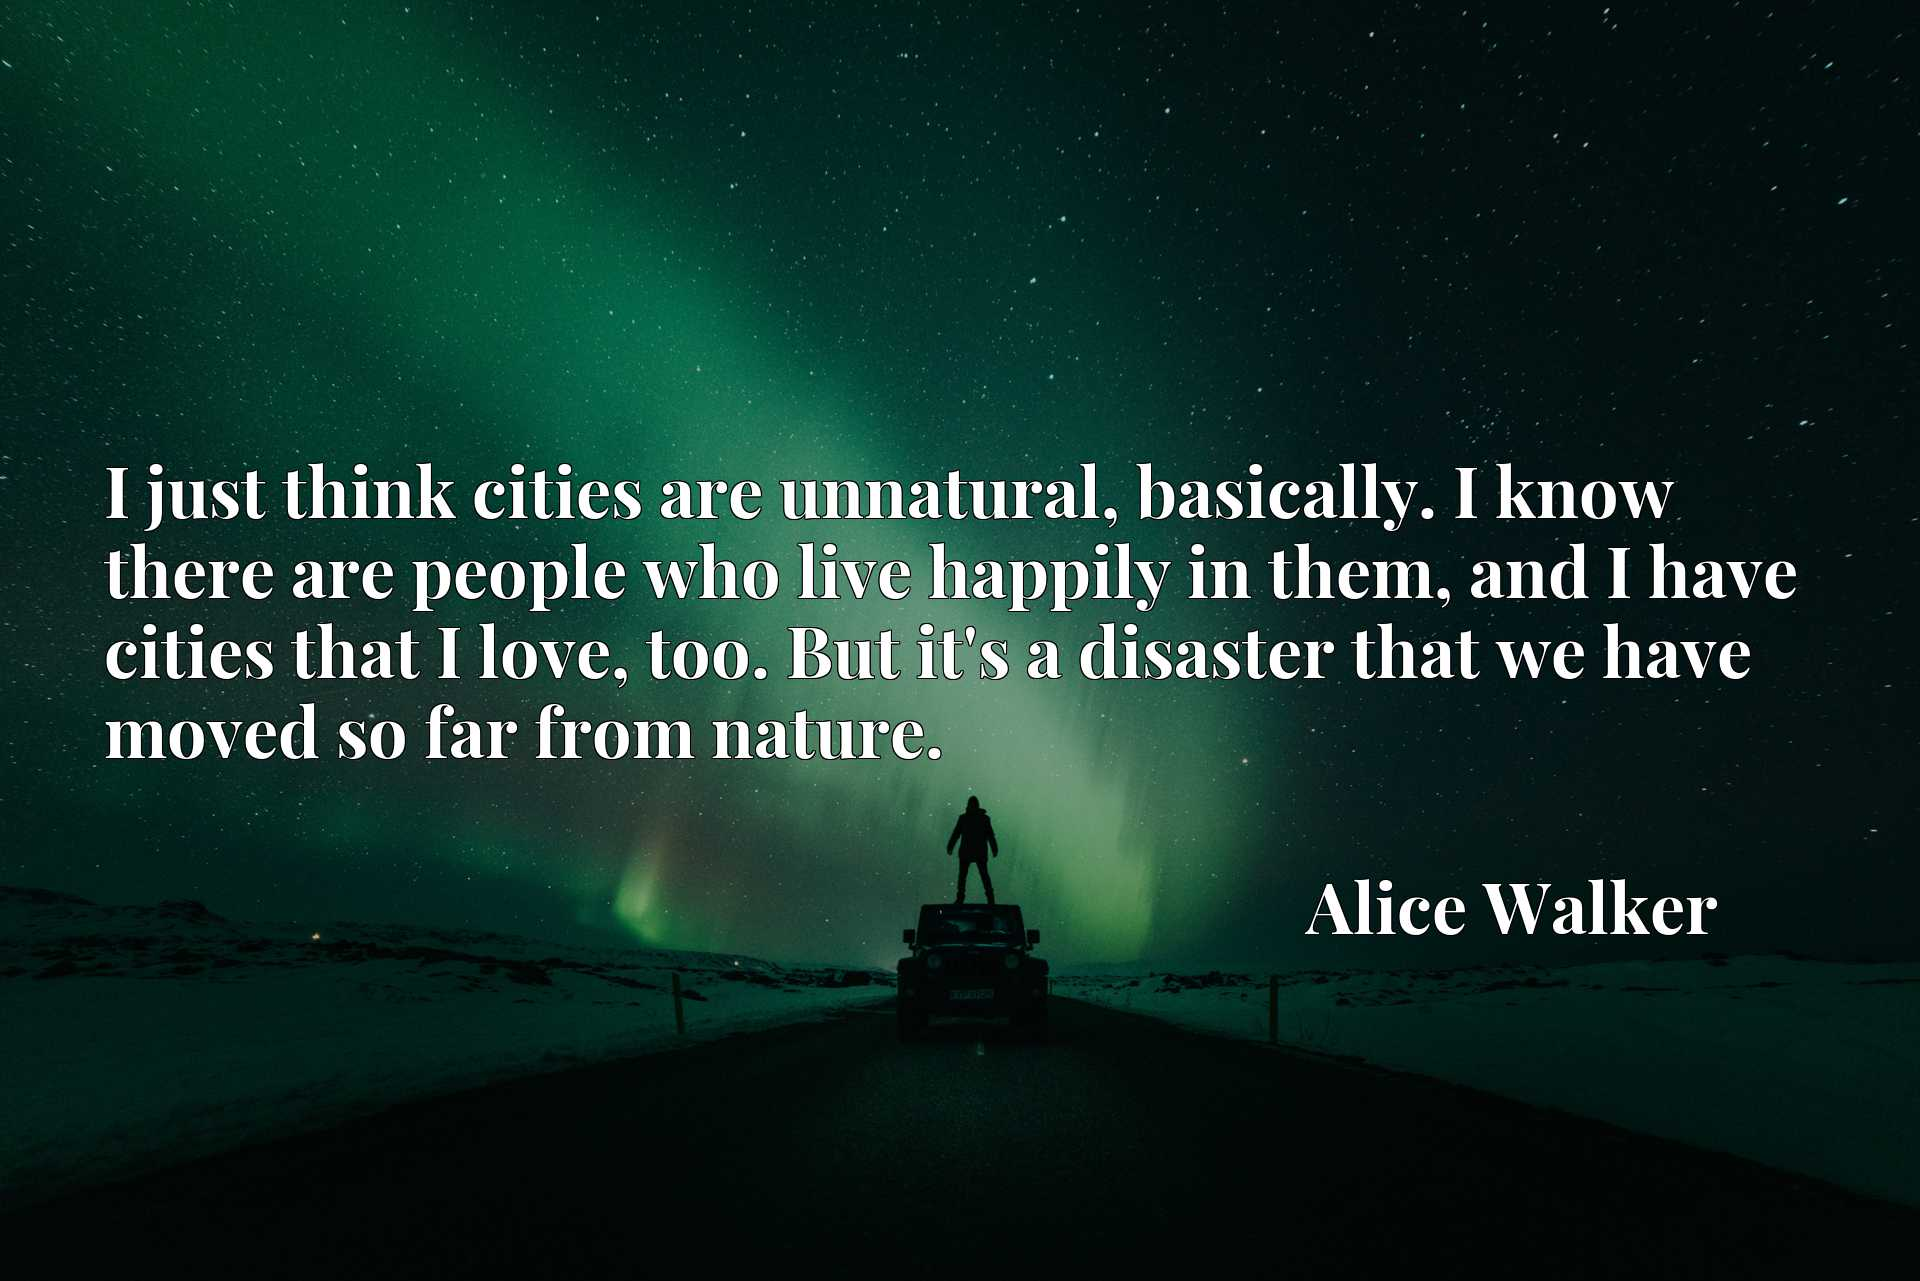 I just think cities are unnatural, basically. I know there are people who live happily in them, and I have cities that I love, too. But it's a disaster that we have moved so far from nature.